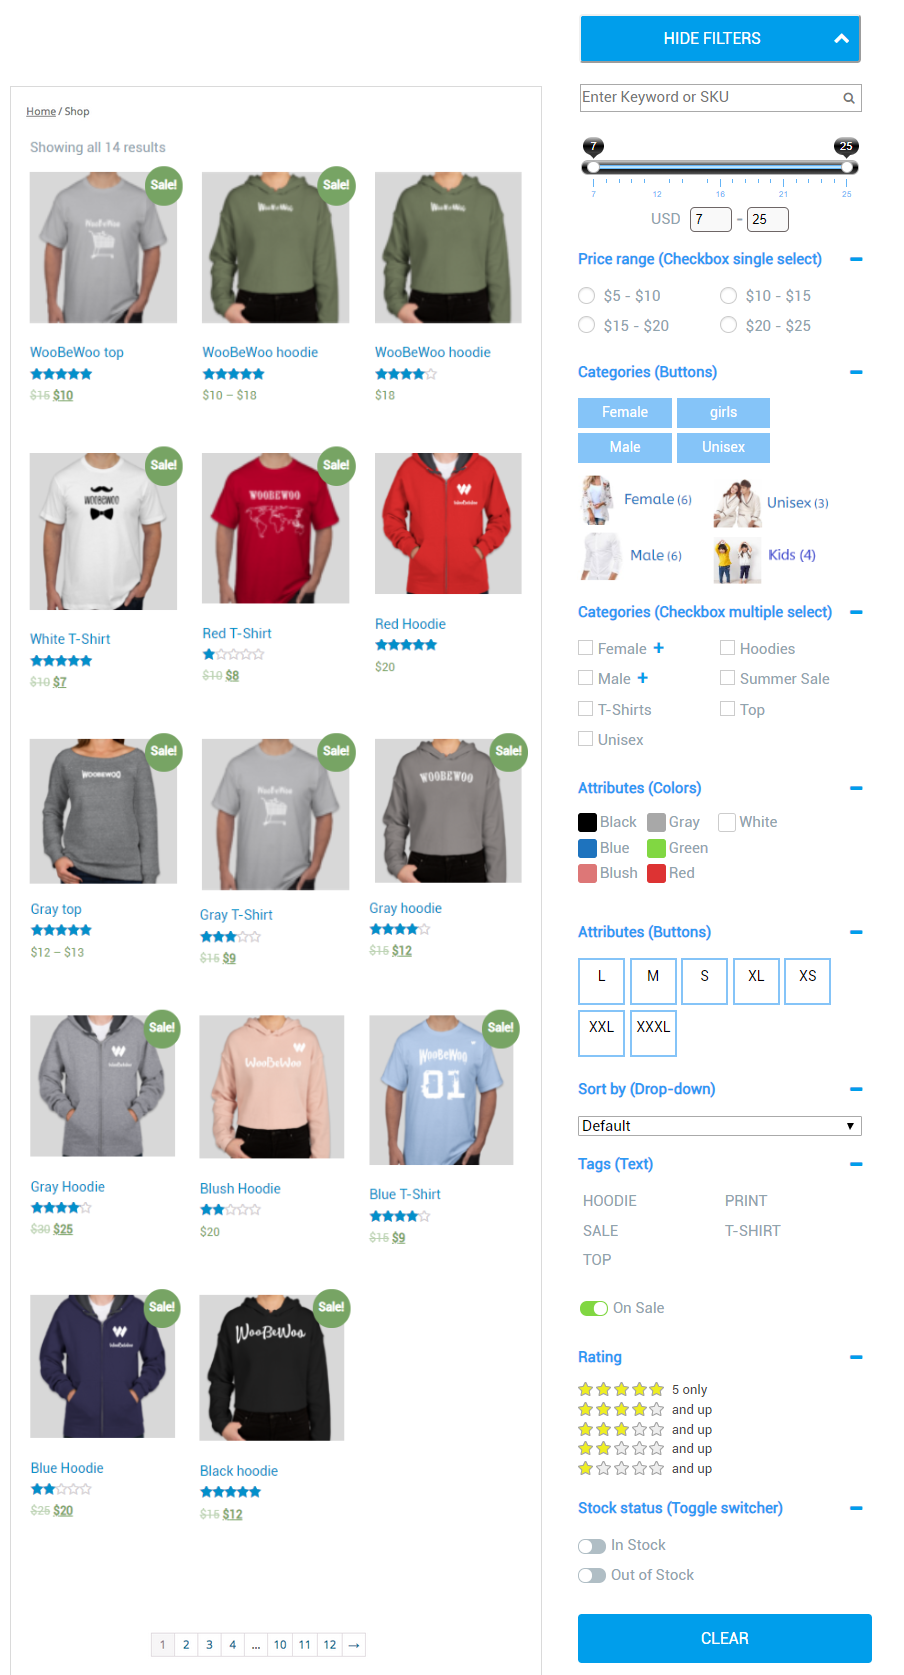 WooCommerce Product Filter 8